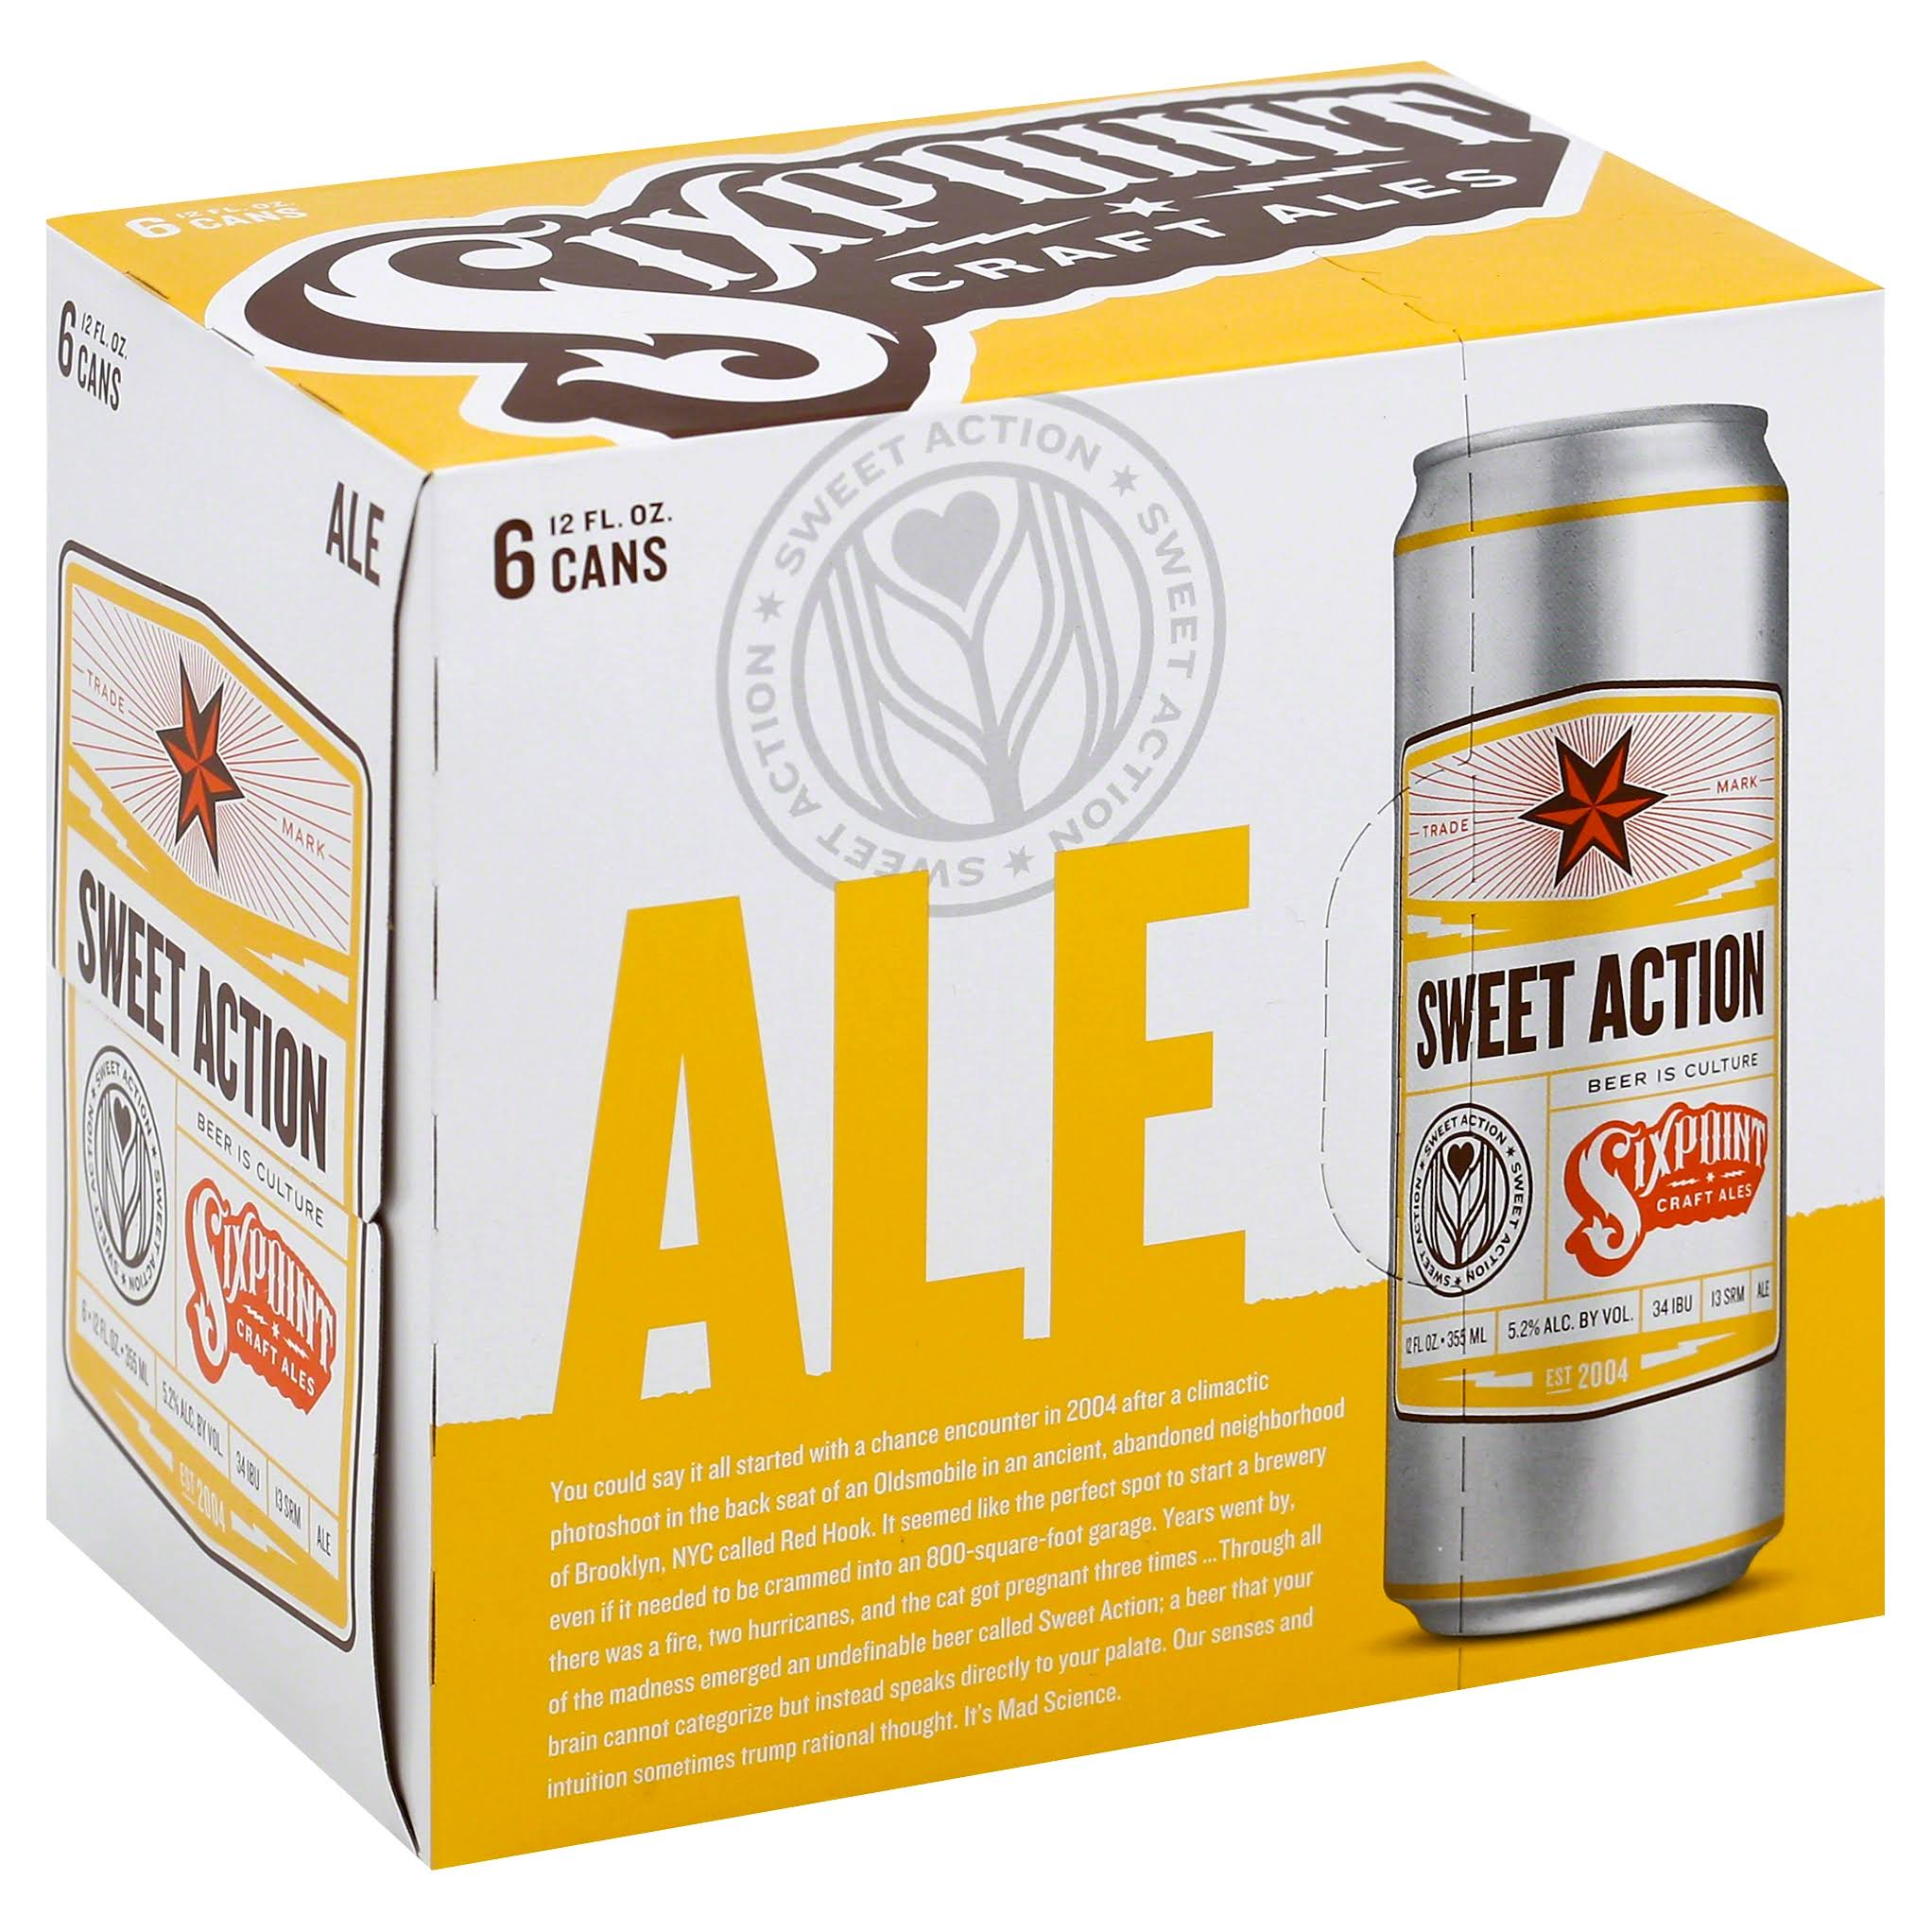 Sixpoint Beer, Ale, Sweet Action - 6 pack, 12 fl oz cans